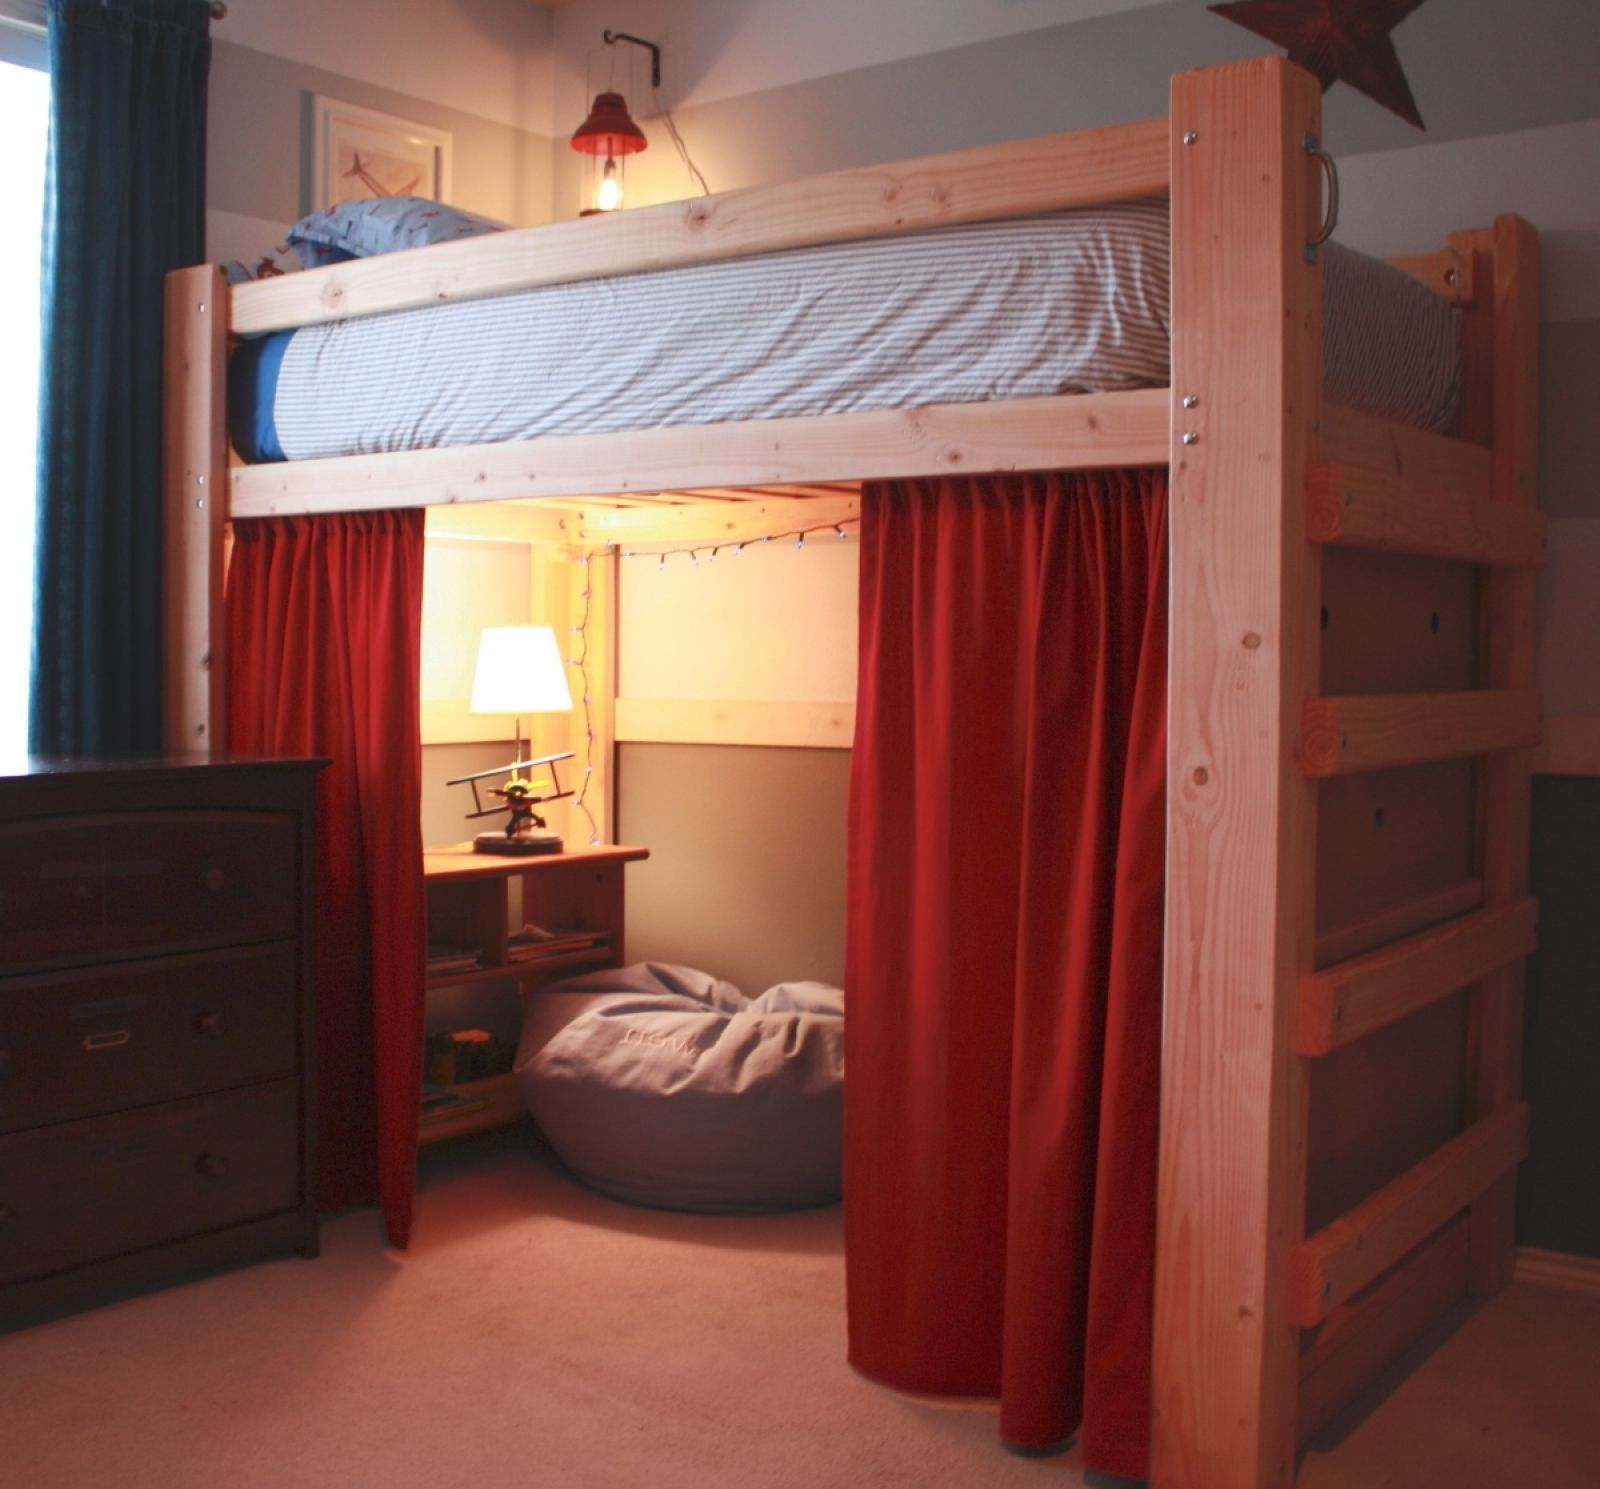 Free Diy Full Size Loft Bed Plans Awesome Woodworking Ideas How To Build A Full Size Loft Bed How To Build A Full Size Loft Bed : full size storage bed plans  - Aquiesqueretaro.Com